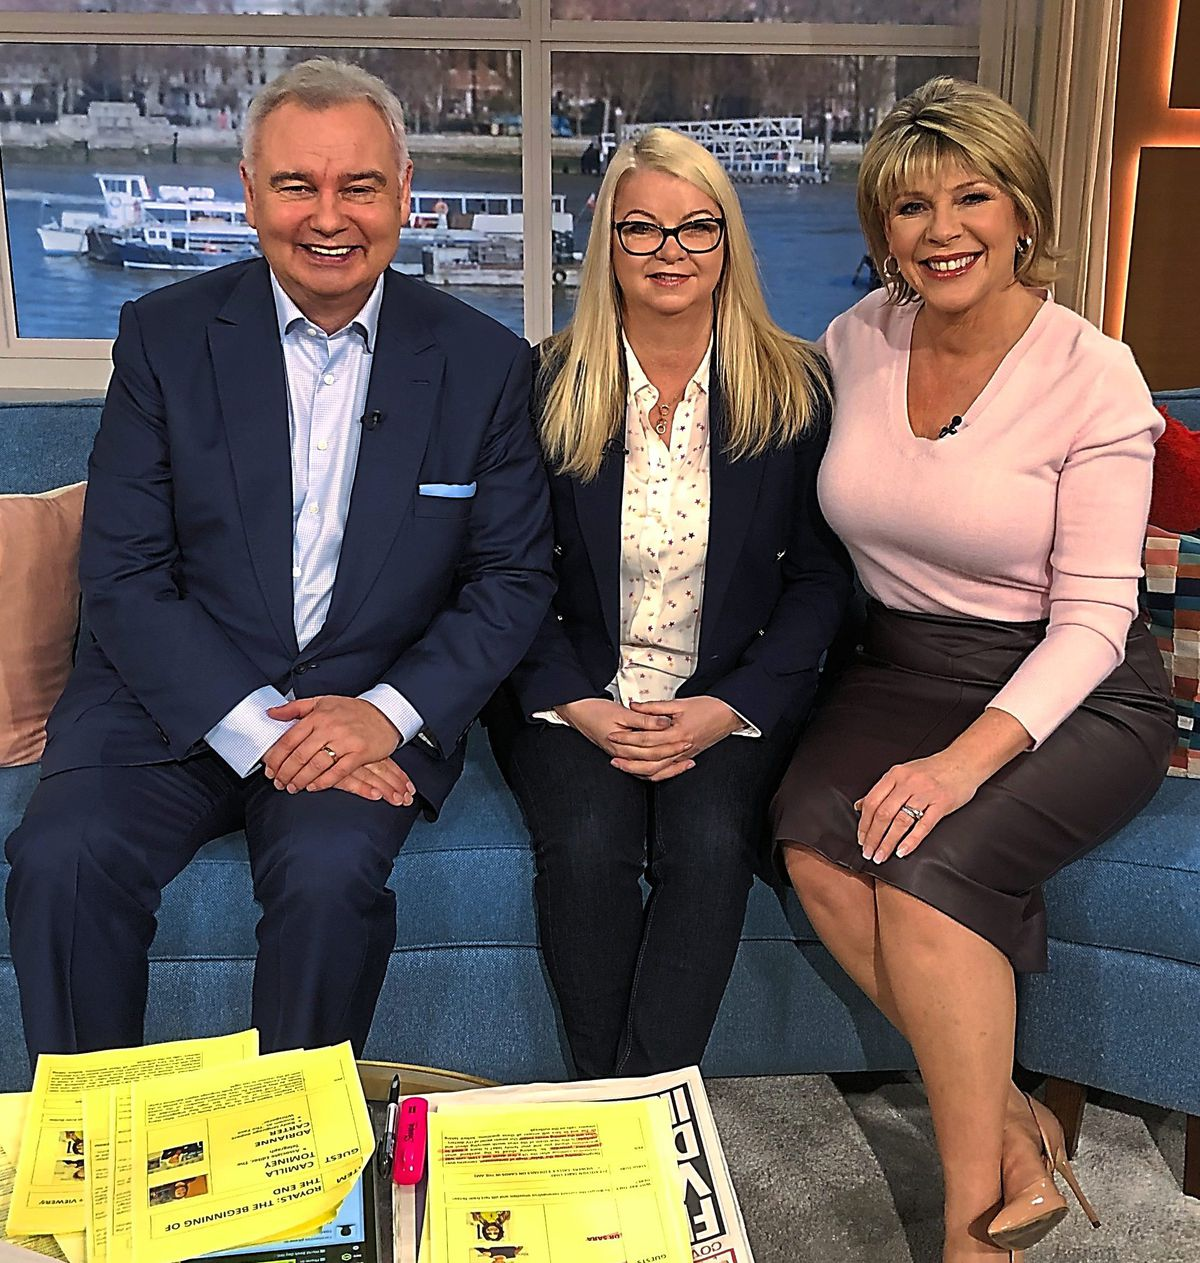 Adrianne with Eamonn Holmes and his wife Ruth